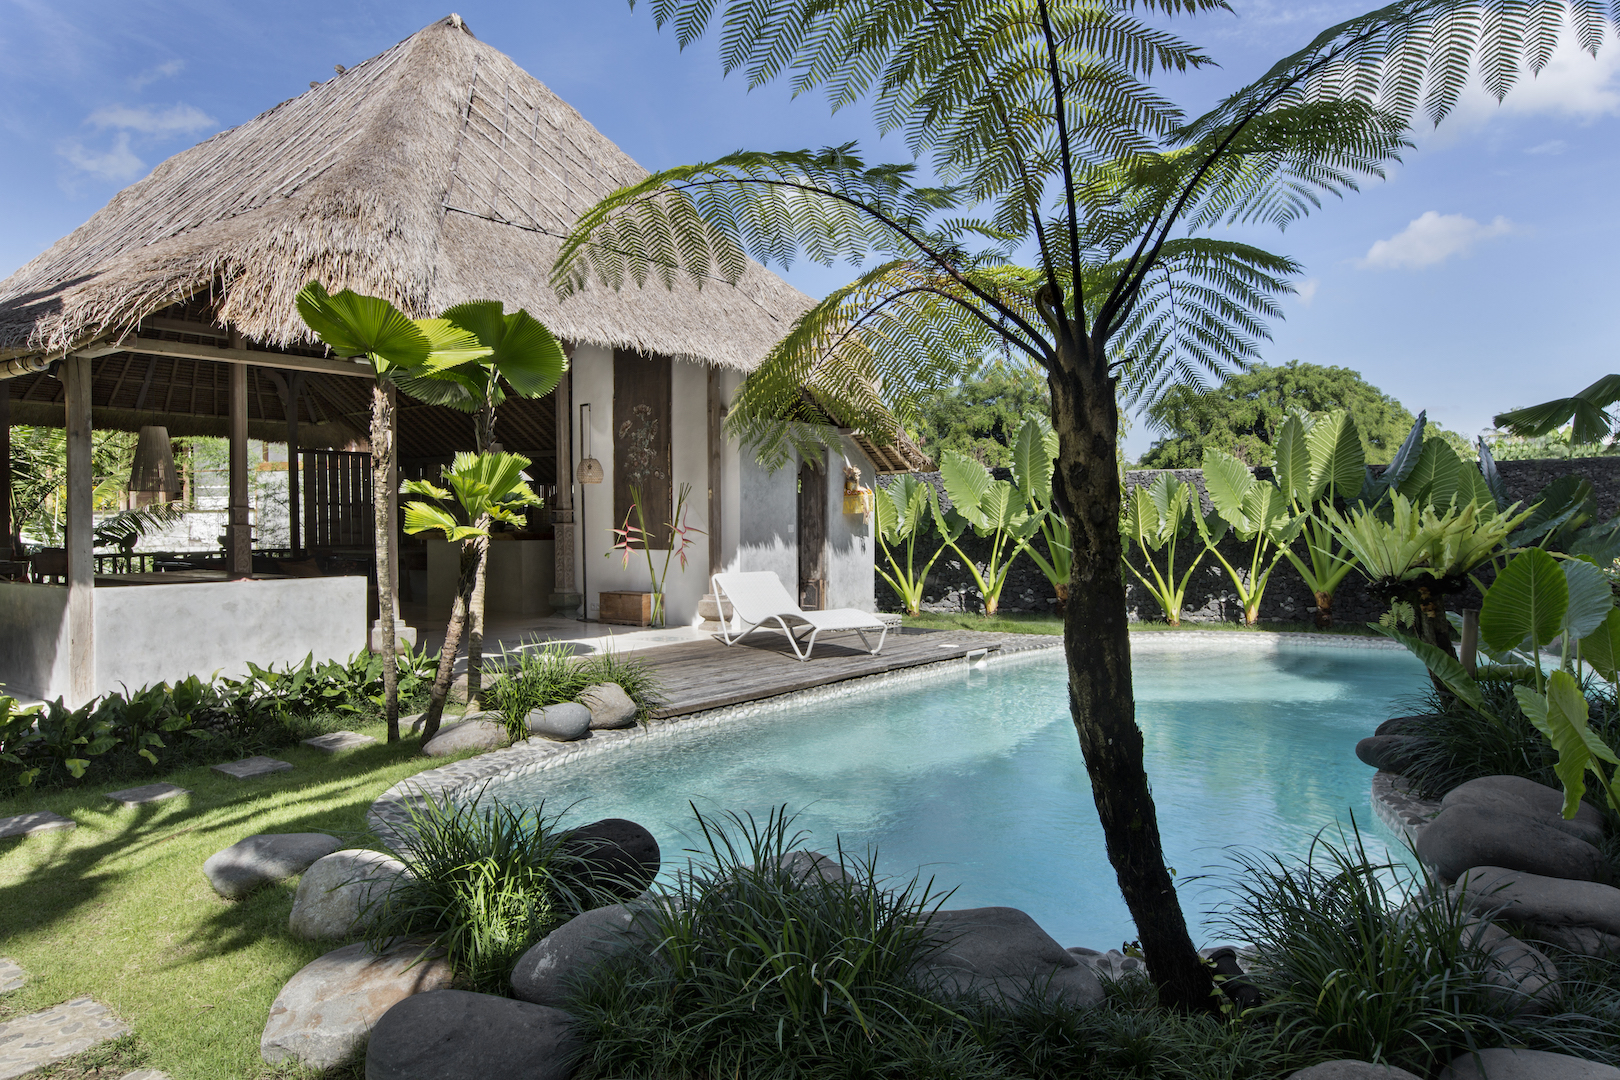 Architect Designed Studios Orchid 2 Apartments For Rent In Ubud Bali Indonesia